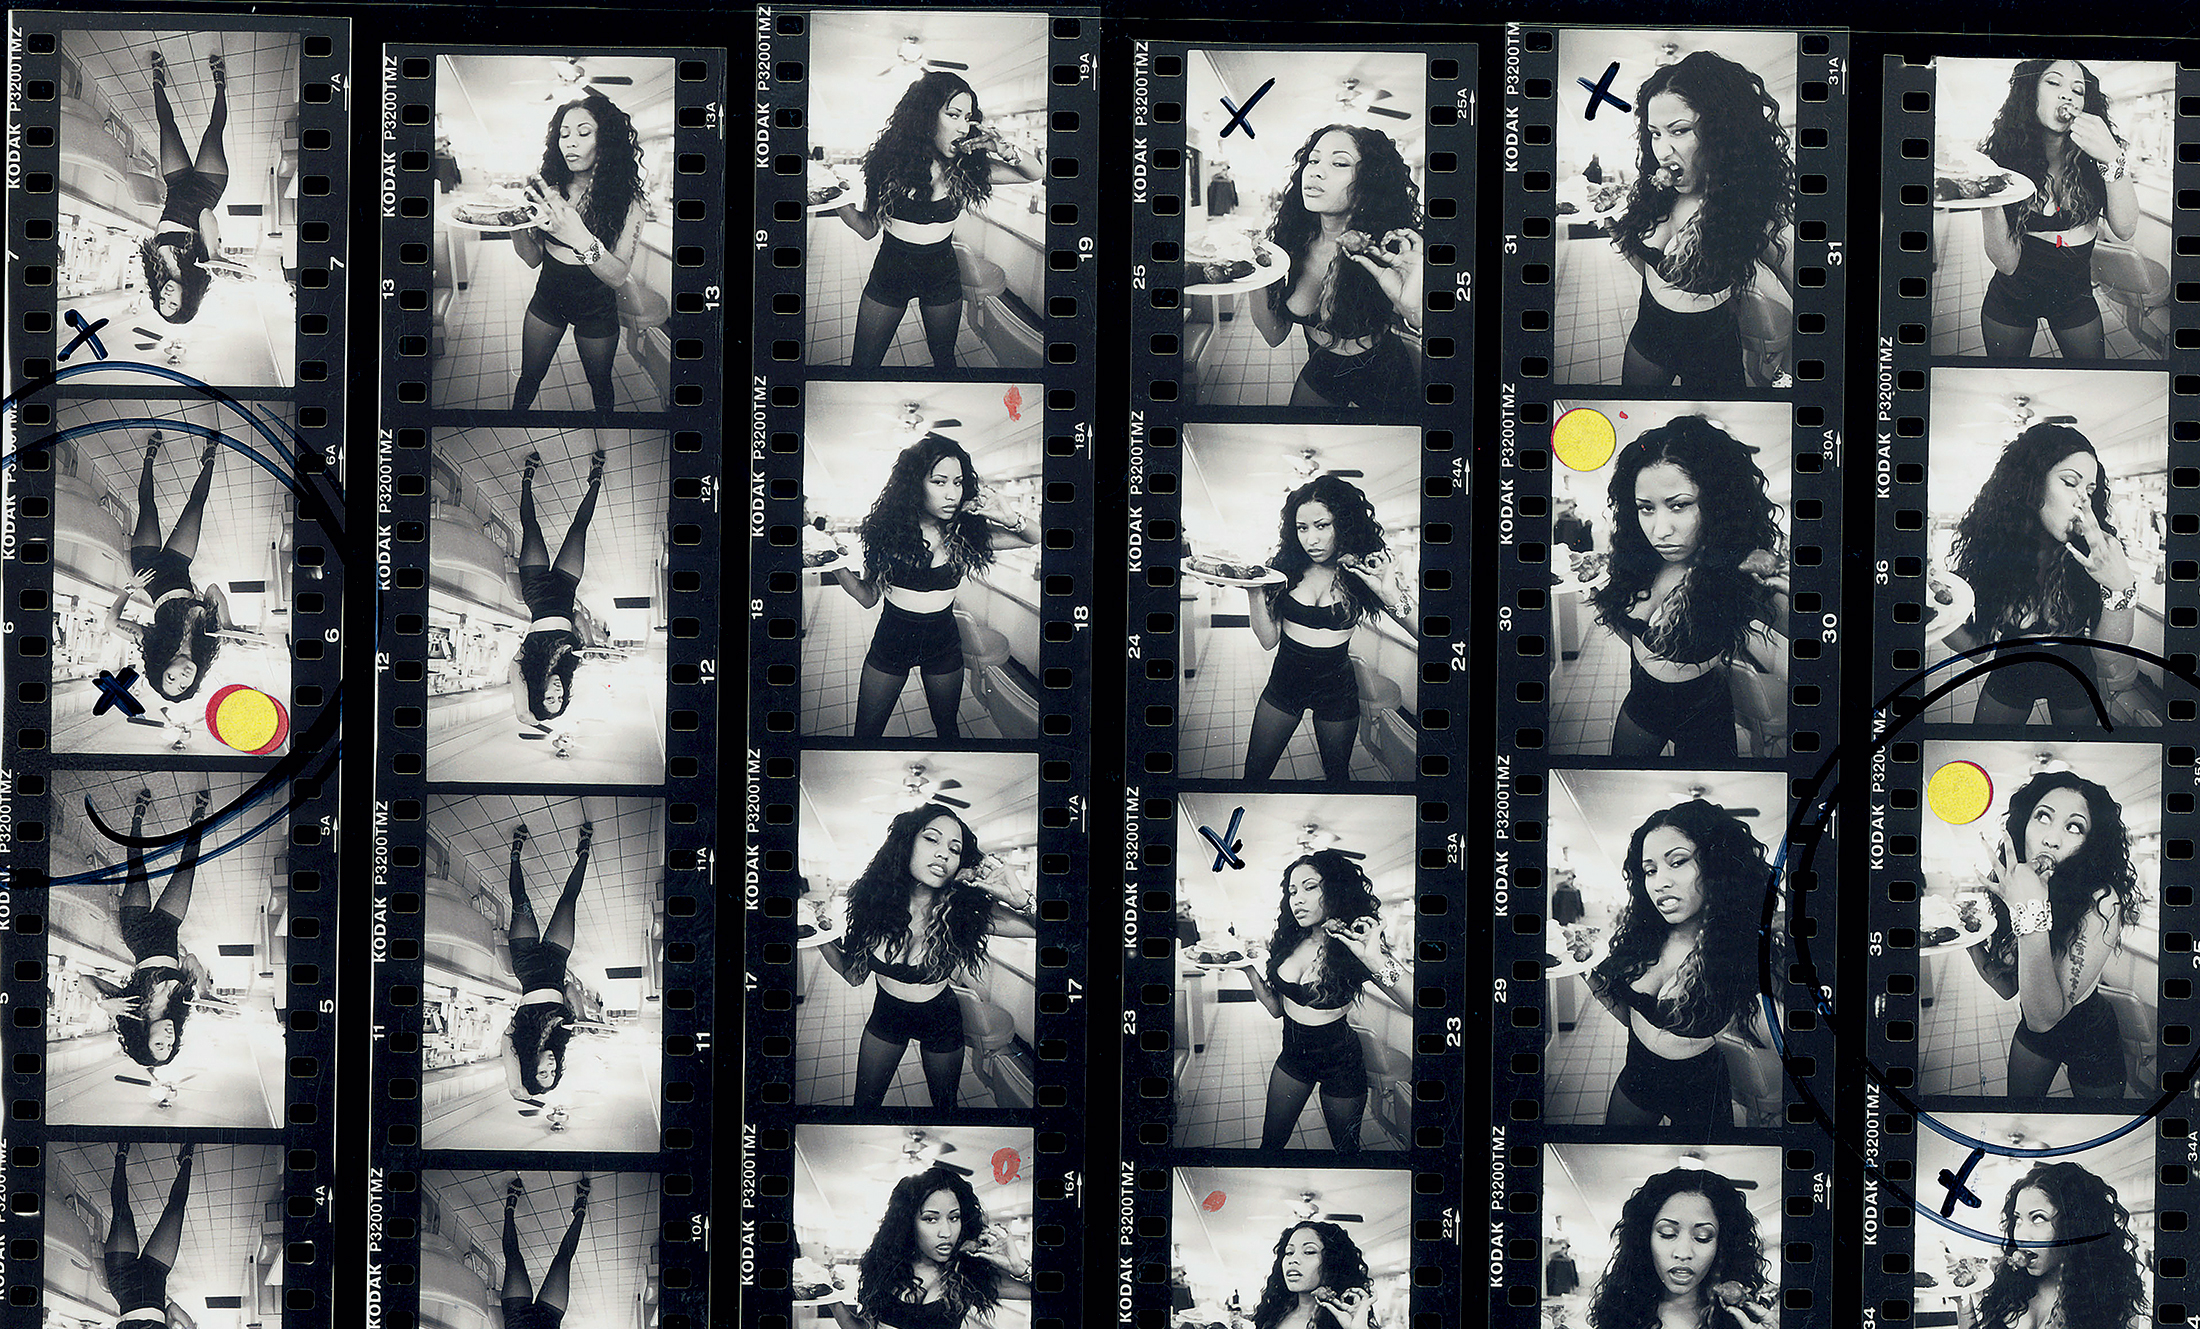 Angela Boatwright's photos of Nicki Minaj, as seen in Tobak's book.